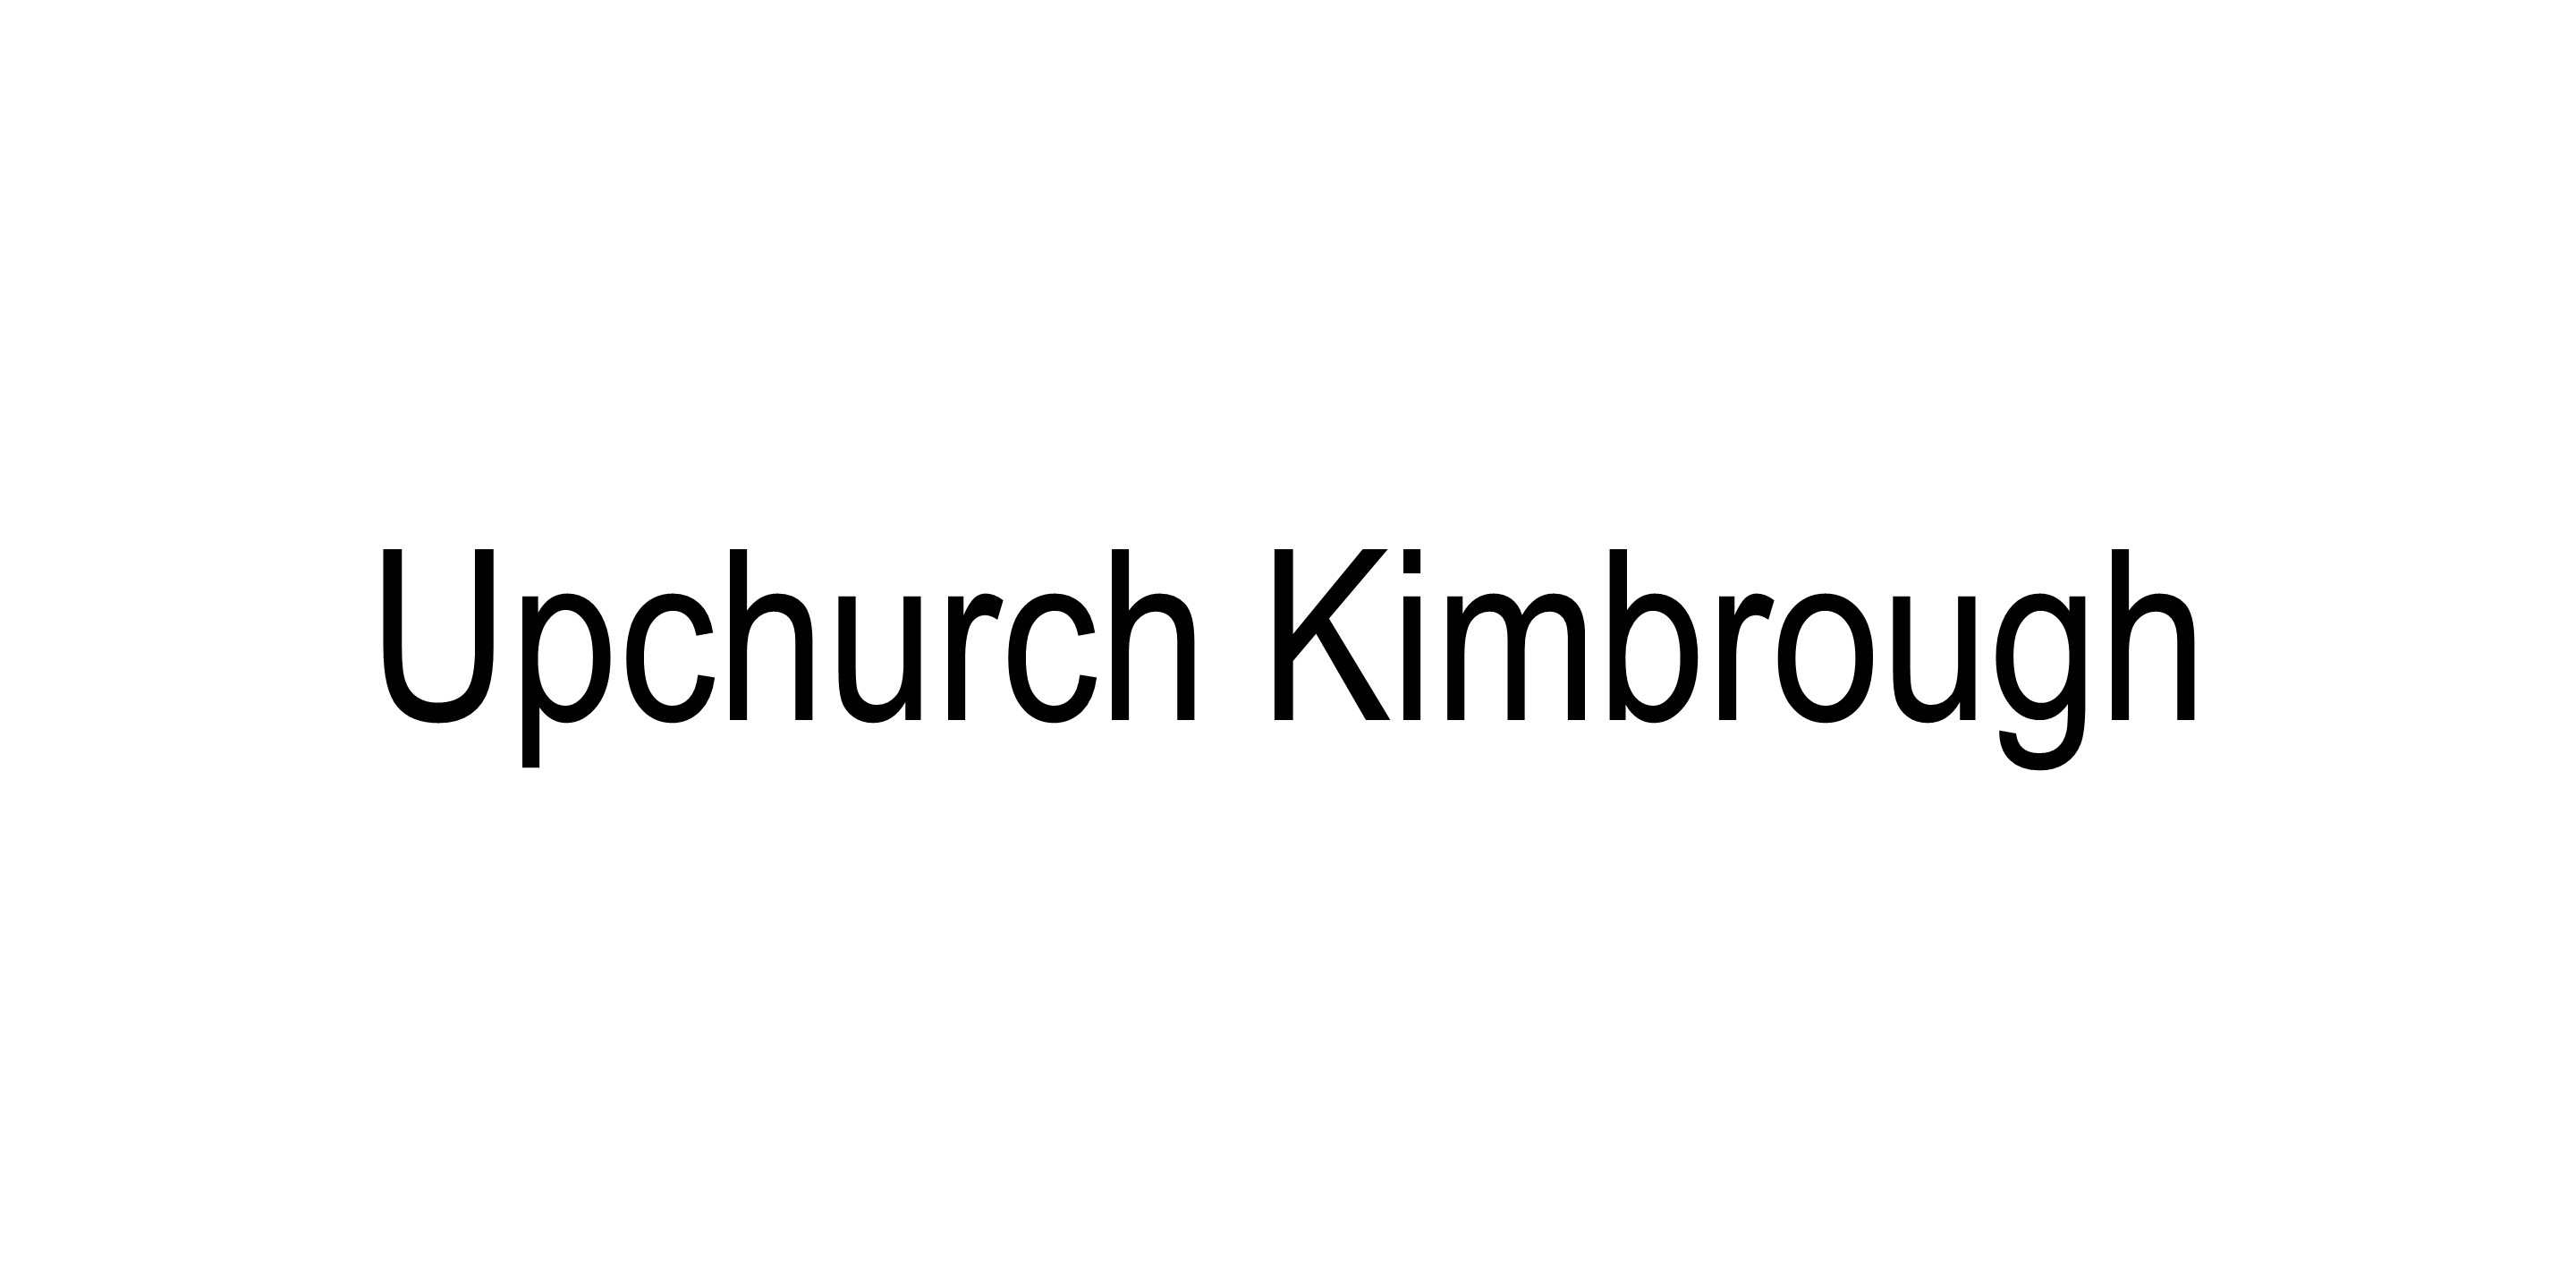 Upchurch Kimbrough logo